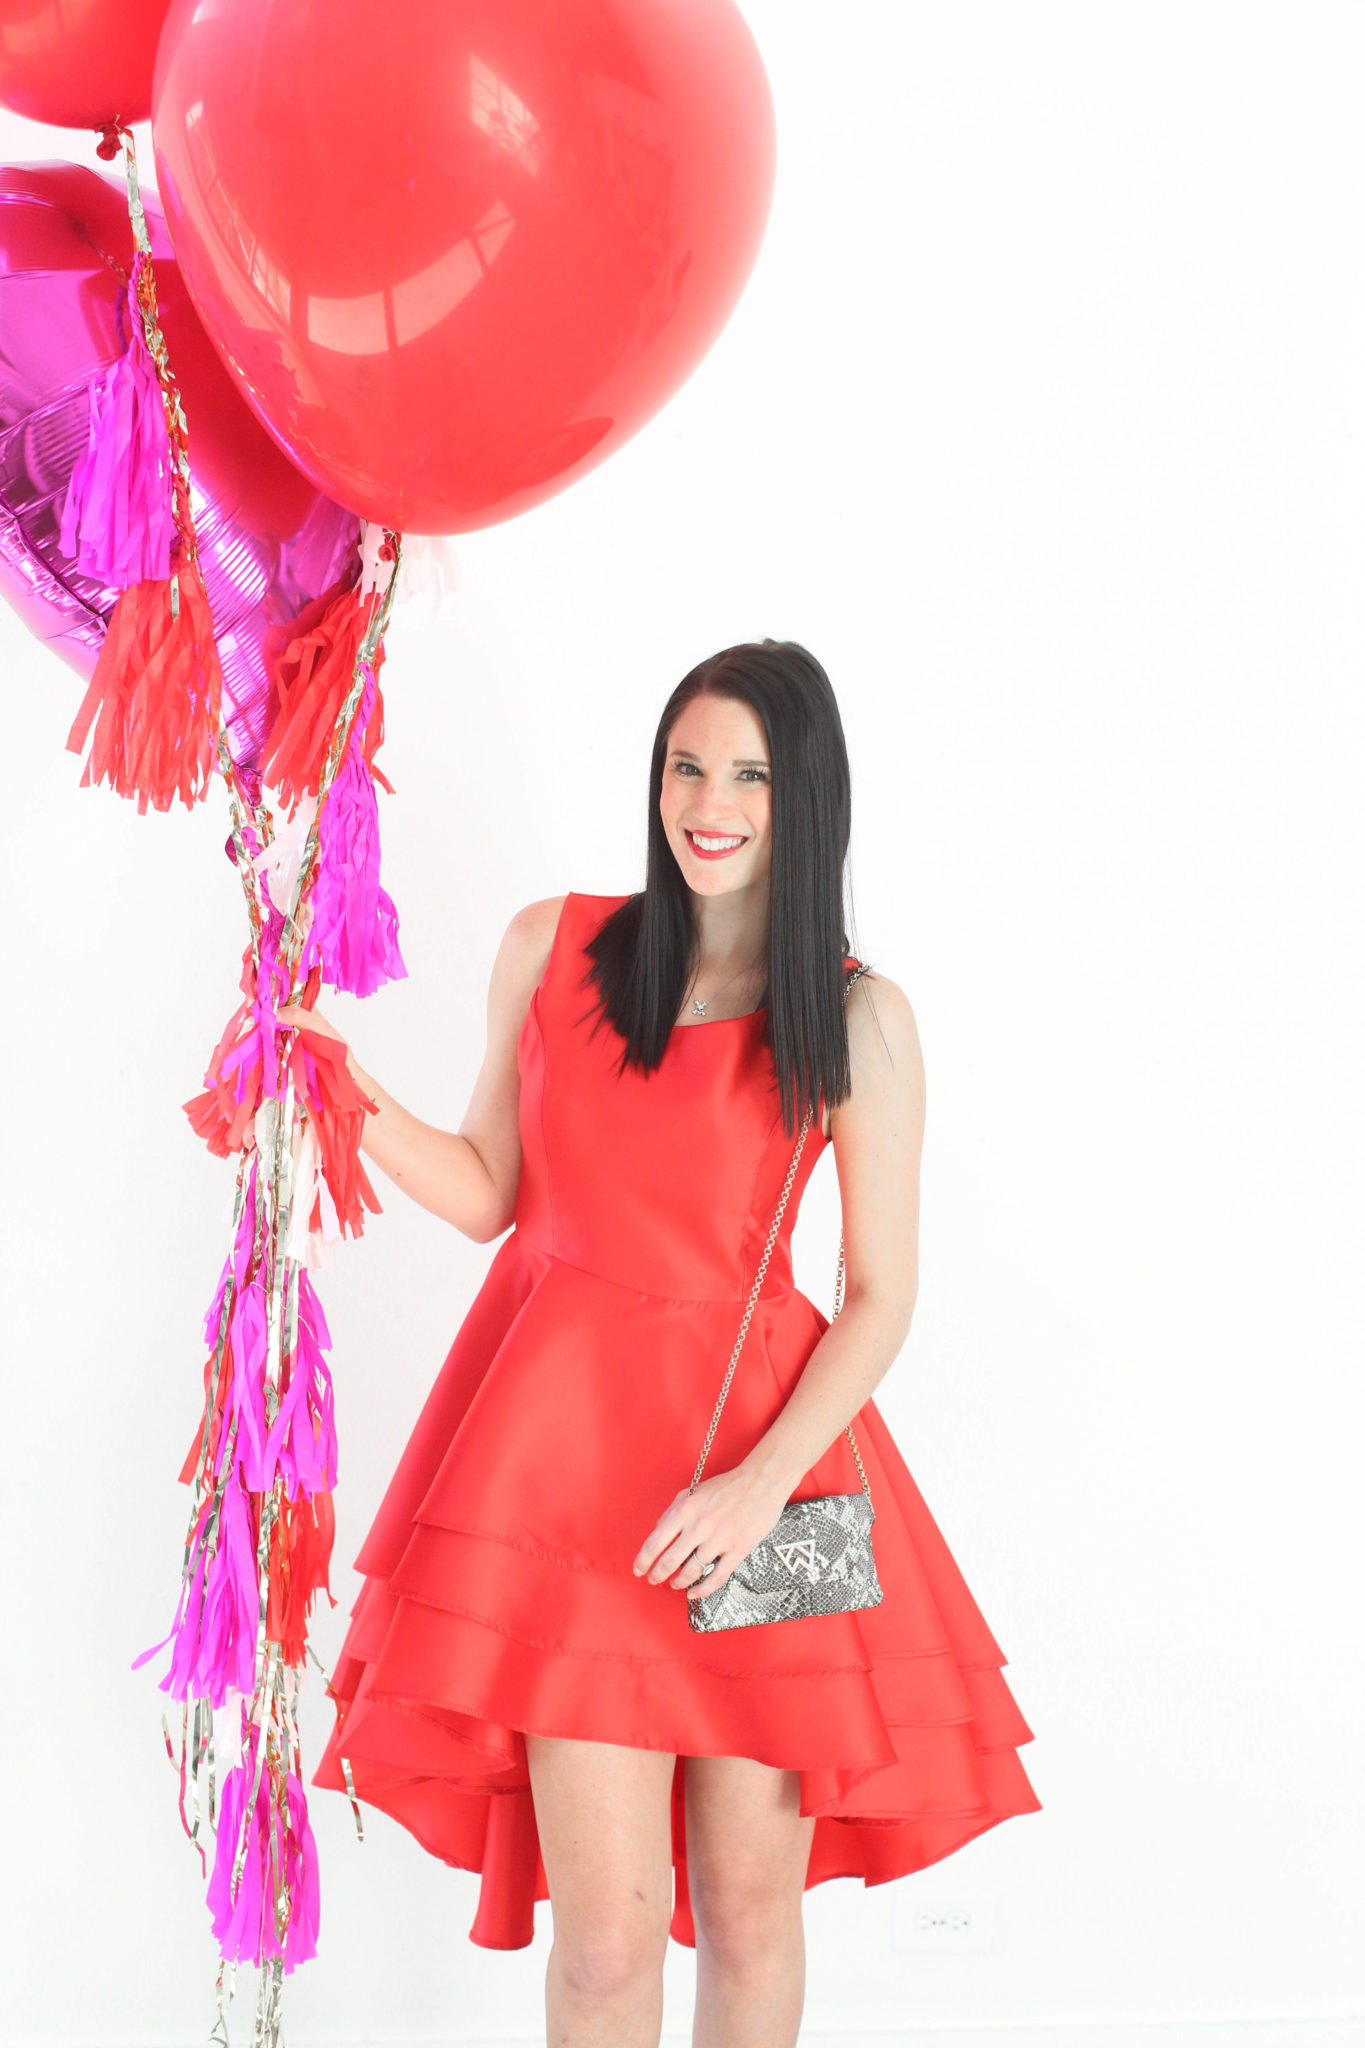 12 Must Have Little Red Dresses for Galentine's Day | classy red dresses | red dress outfit | valentine's day outfit | Valentine's Day dress || Dressed to Kill #reddress #valentinedress #valentineoutfit | Little Red Dresses for Galentine's Day by top US fashion blog, Dressed to Kill: image of a woman holding balloons and wearing a Jill Jill Stuart red dress, Kelly Wynne bag and Steve Madden shoes